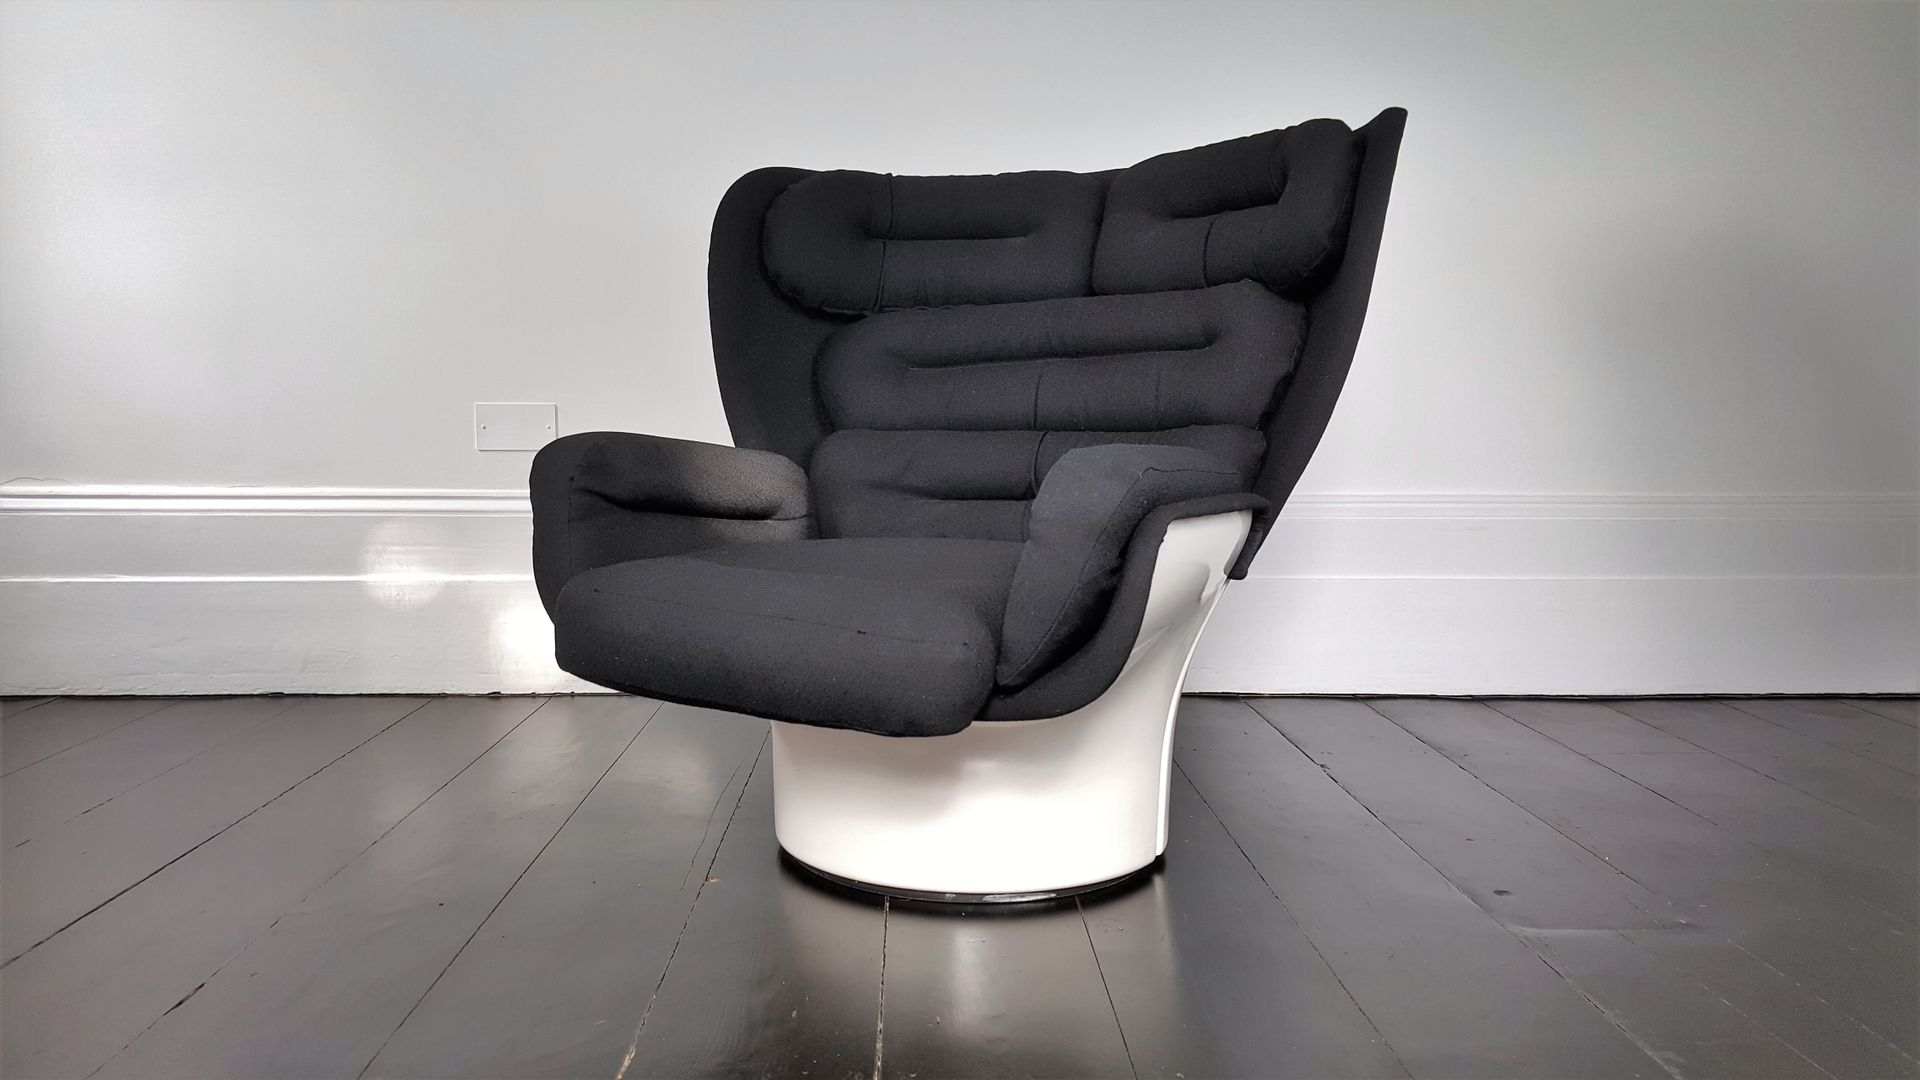 chaise elda par joe colombo pour comfort 1963 en vente sur pamono. Black Bedroom Furniture Sets. Home Design Ideas